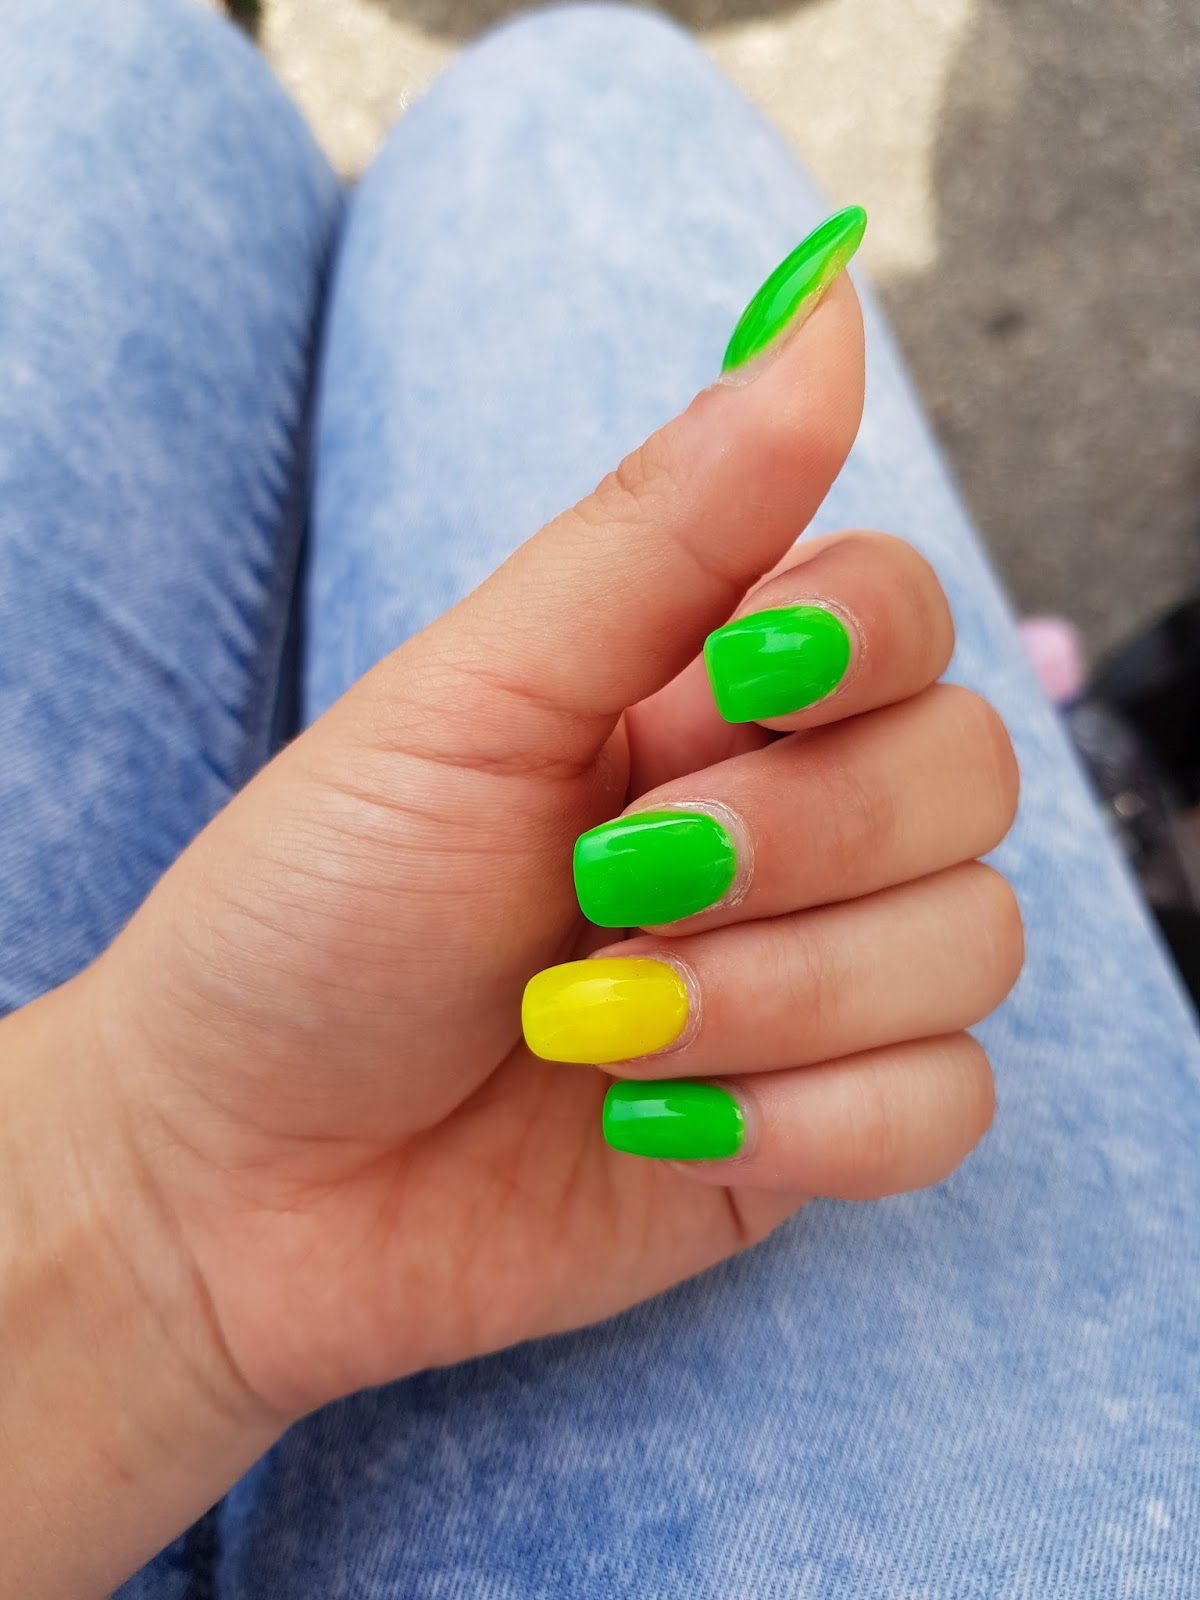 Coole Gelnägel Beauty Fashion Lifestyle Neue Gelnägel Neonails